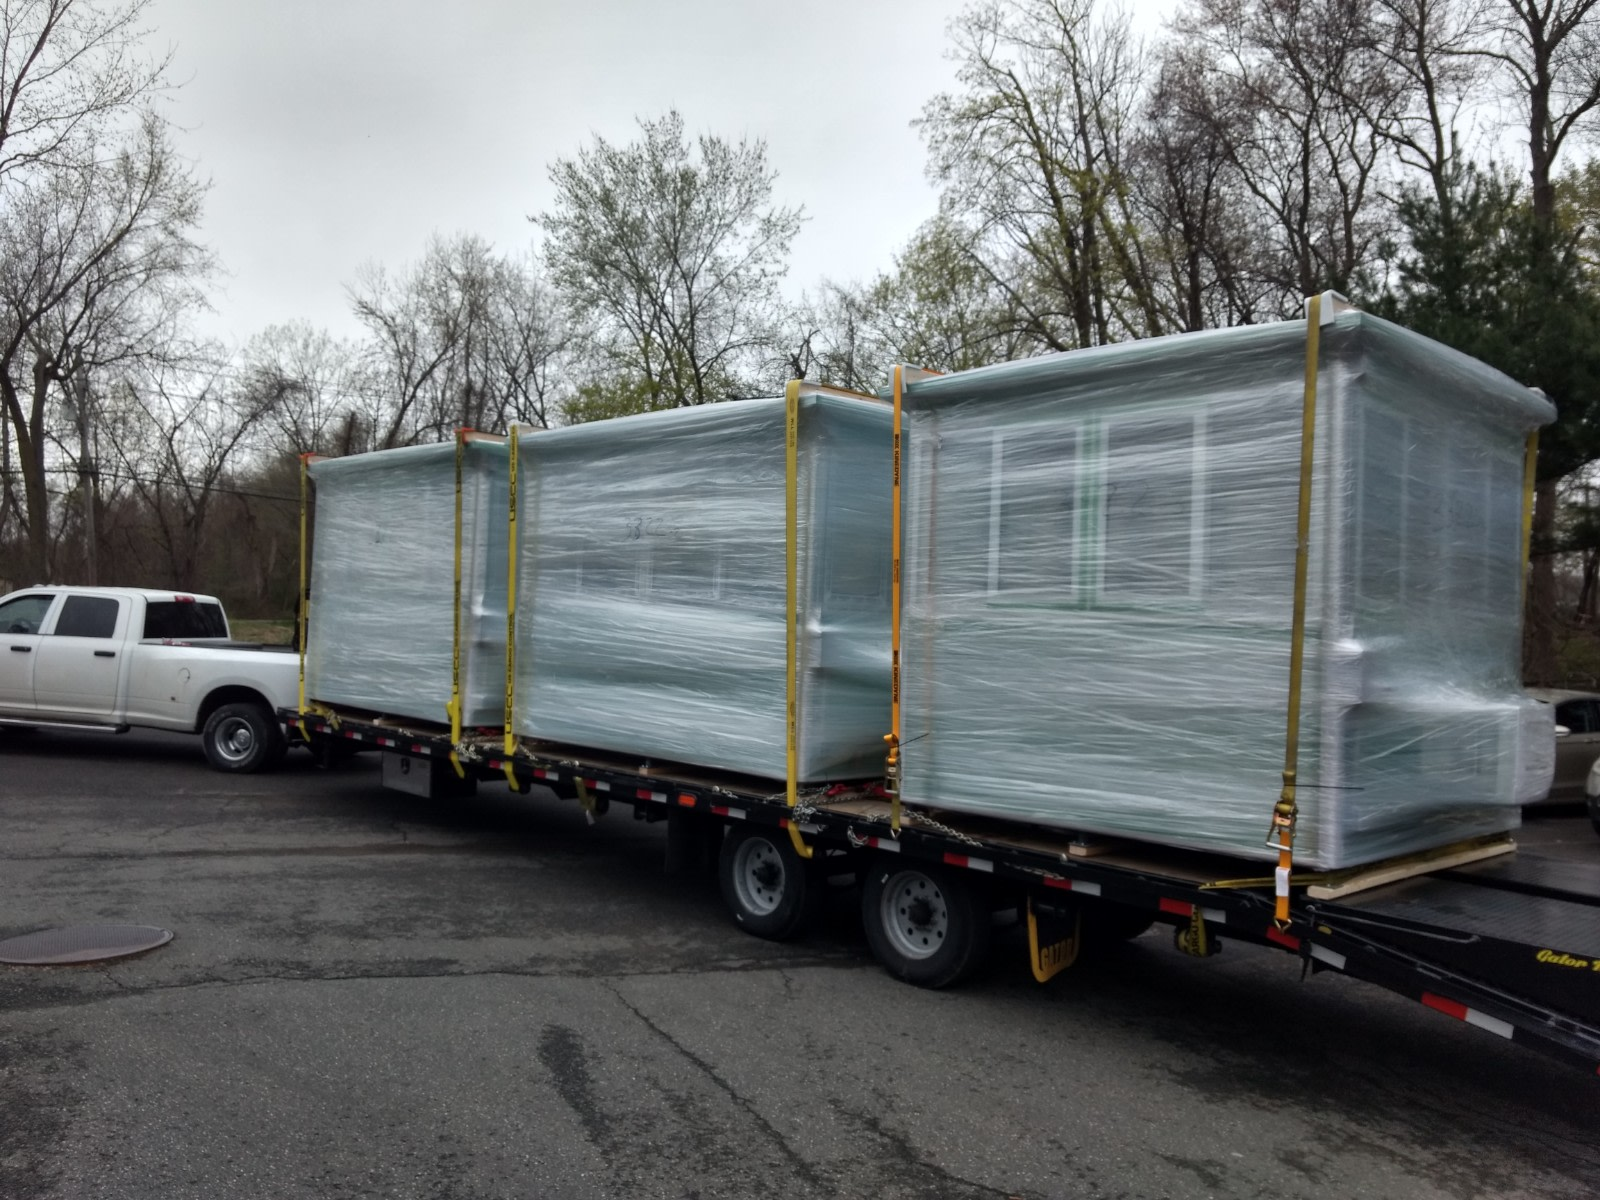 8x10 Booths ready for Delivery in Jacksonville, FL with Built-in AC and Sliding Windows